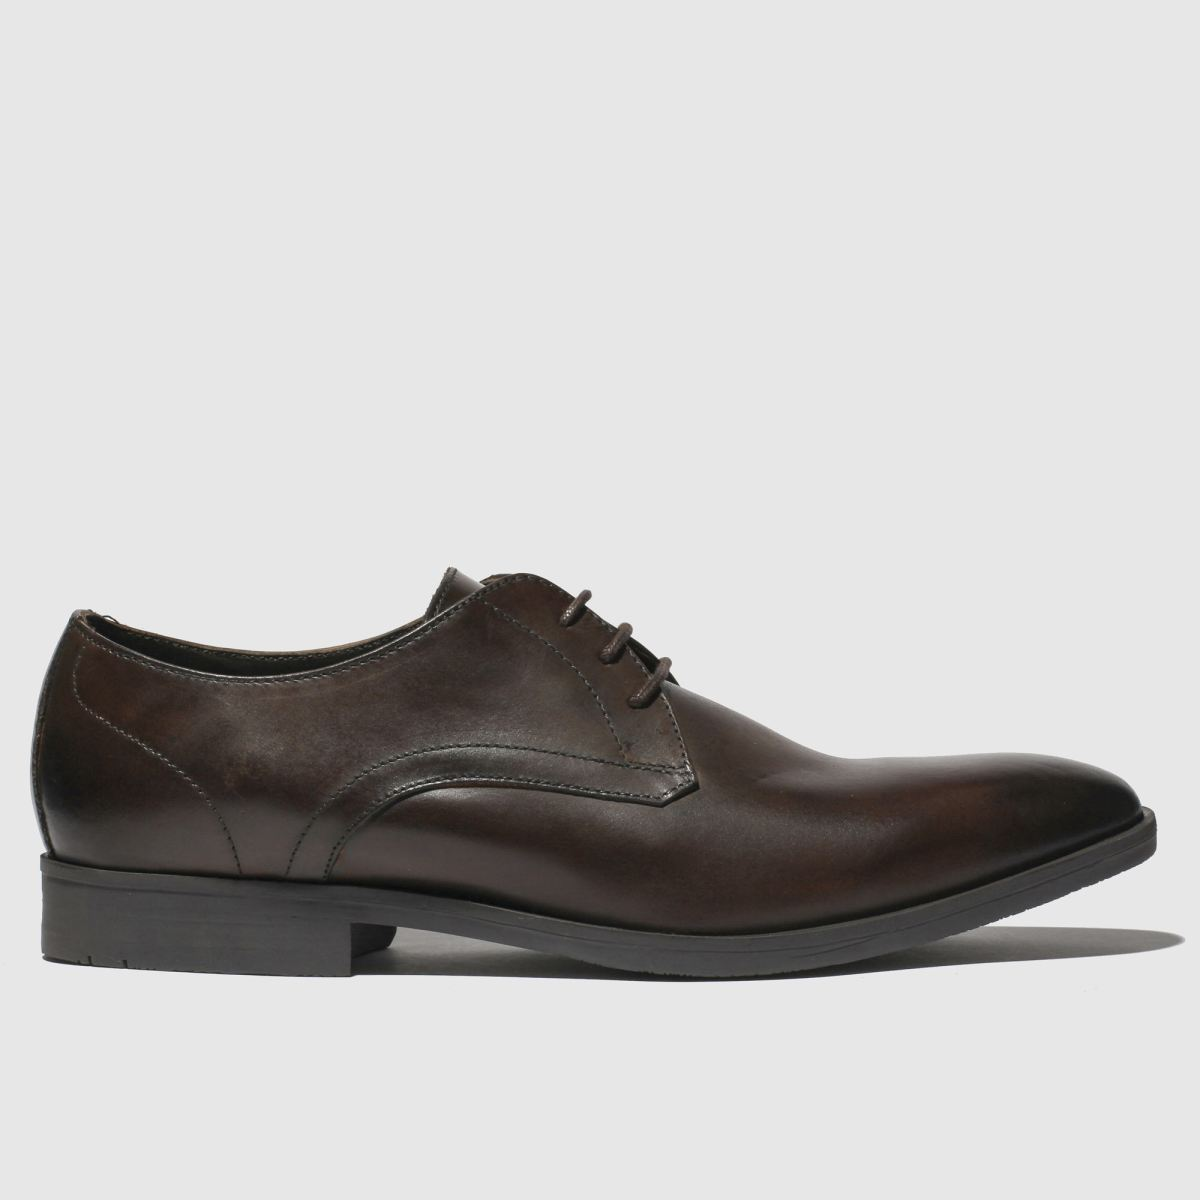 Ikon Ikon Brown Cresta Shoes